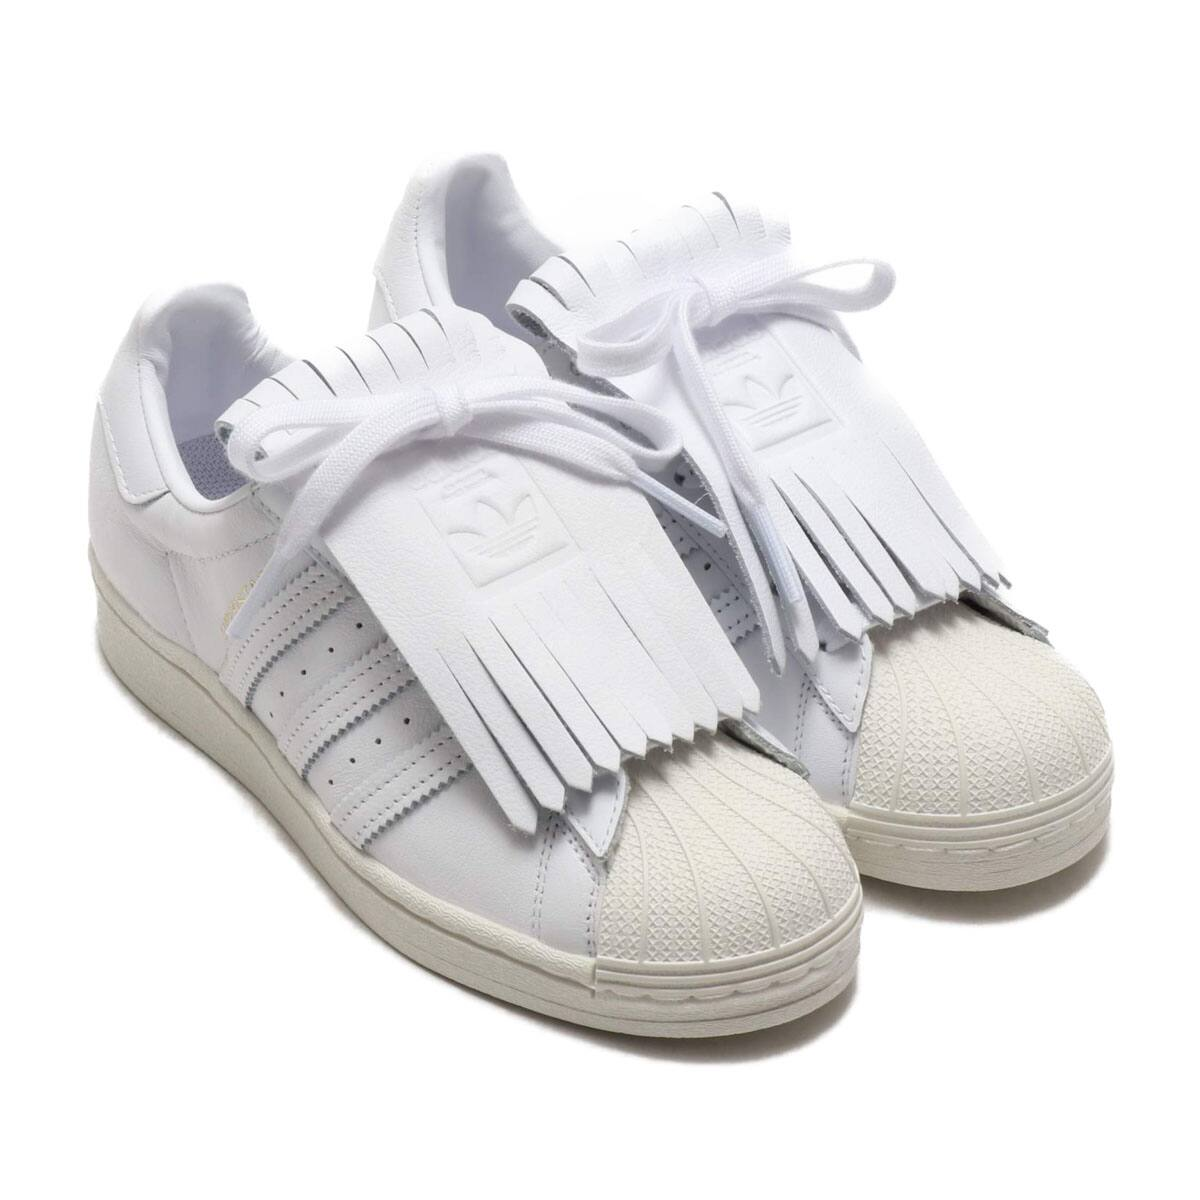 adidas SUPERSTAR FR W FOOTWEAR WHITE/OFF WHITE/GOLD METARIC 20SS-I_photo_large